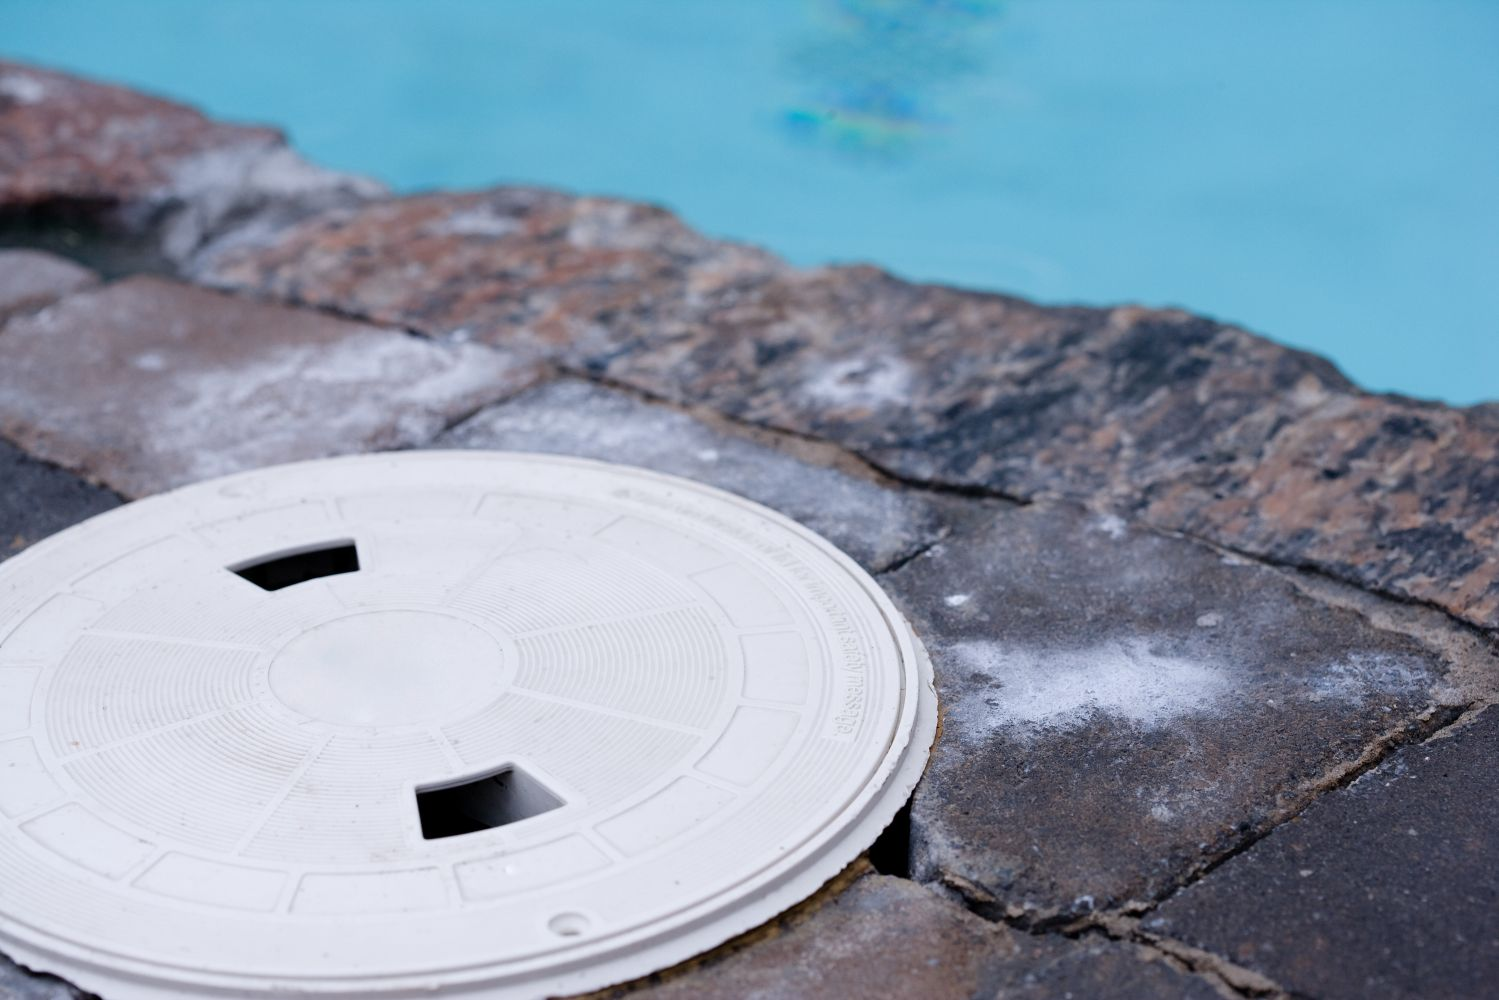 pool filter available with pool accessories in Kailua, HI